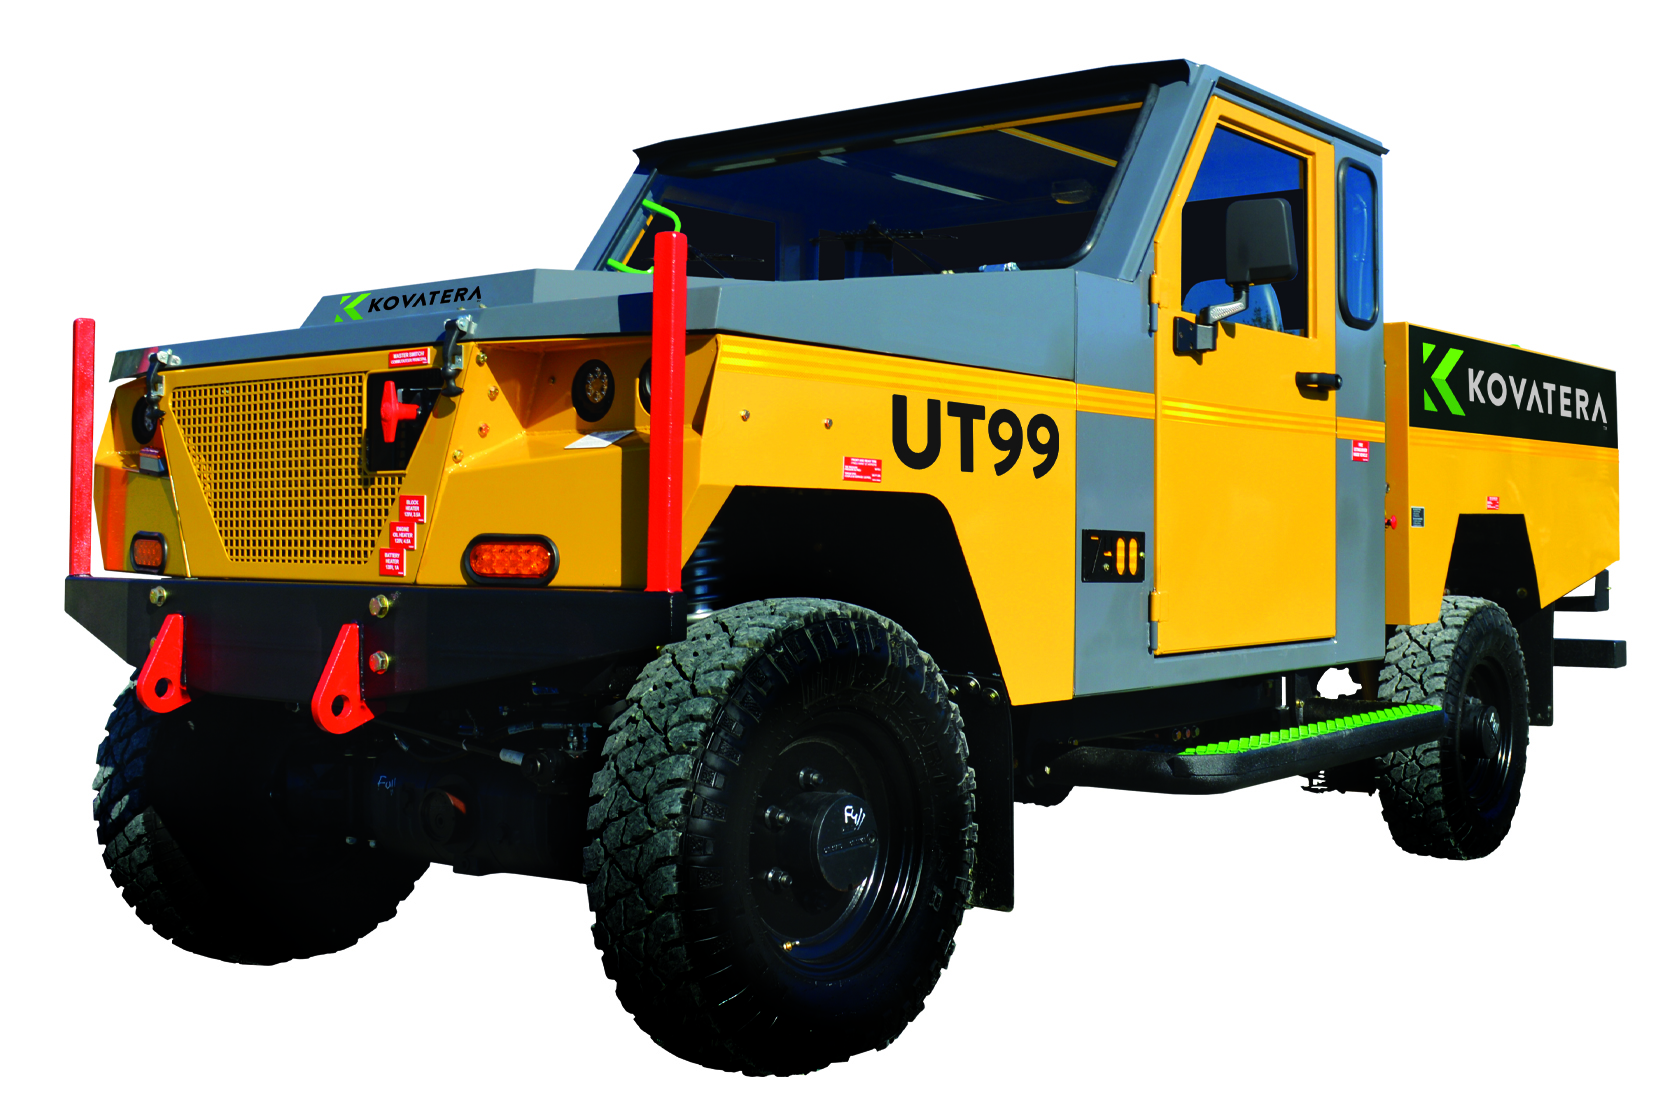 Kovatera Underground Mining Utility Vehicles by Drivetrainpower